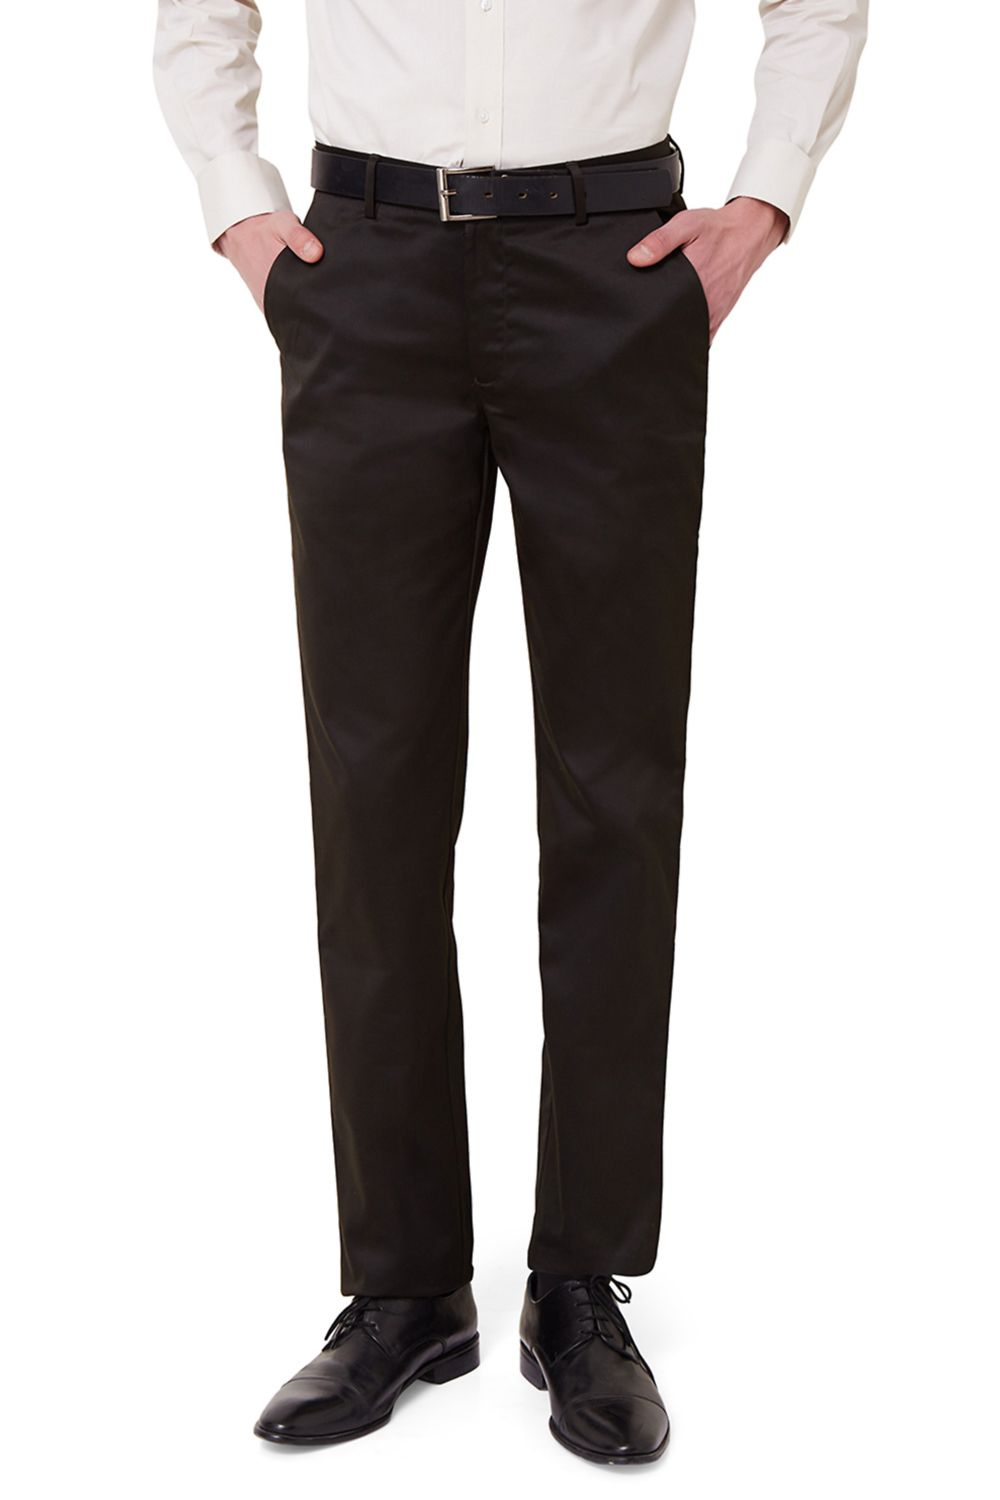 Peter England Black Slim -Fit Flat Trousers